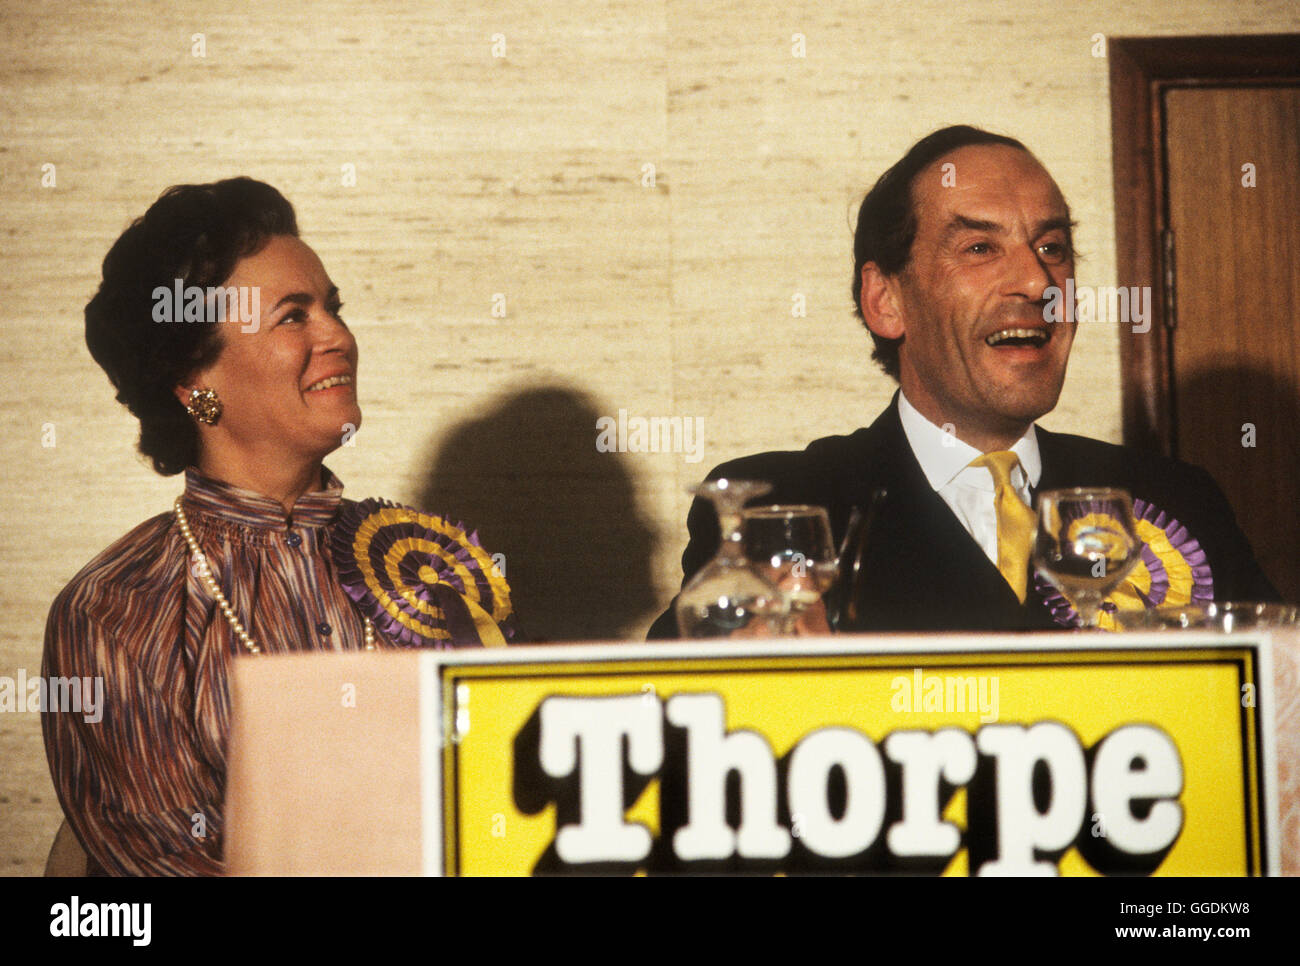 Jeremy Thorpe MP and wife Marion Thorpe portrait 1979 Devon 1970s UK HOMER SYKESStock Photo